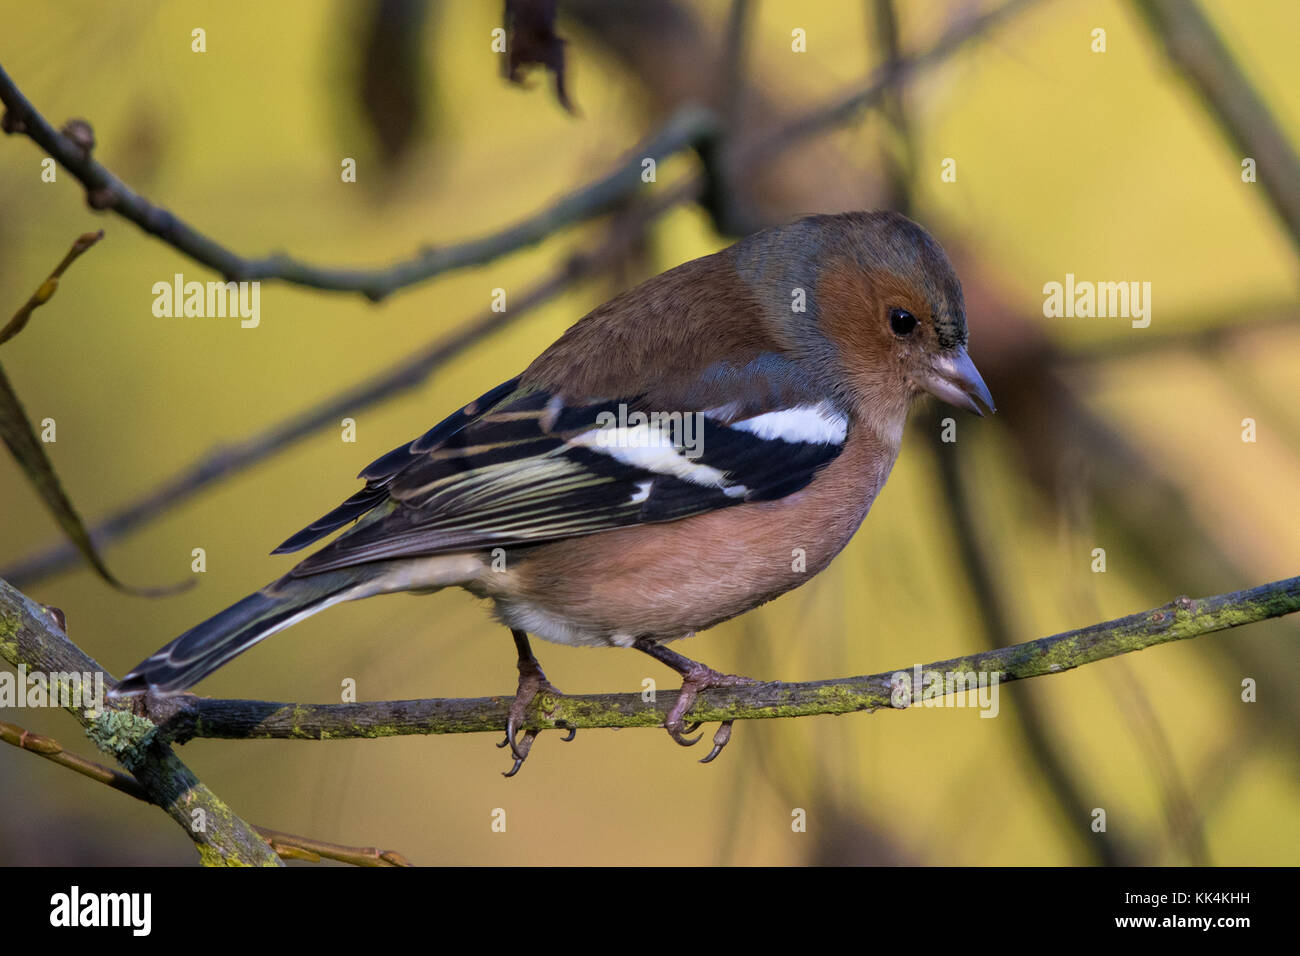 male Common Chaffinch (Fringilla coelebs) - Stock Image